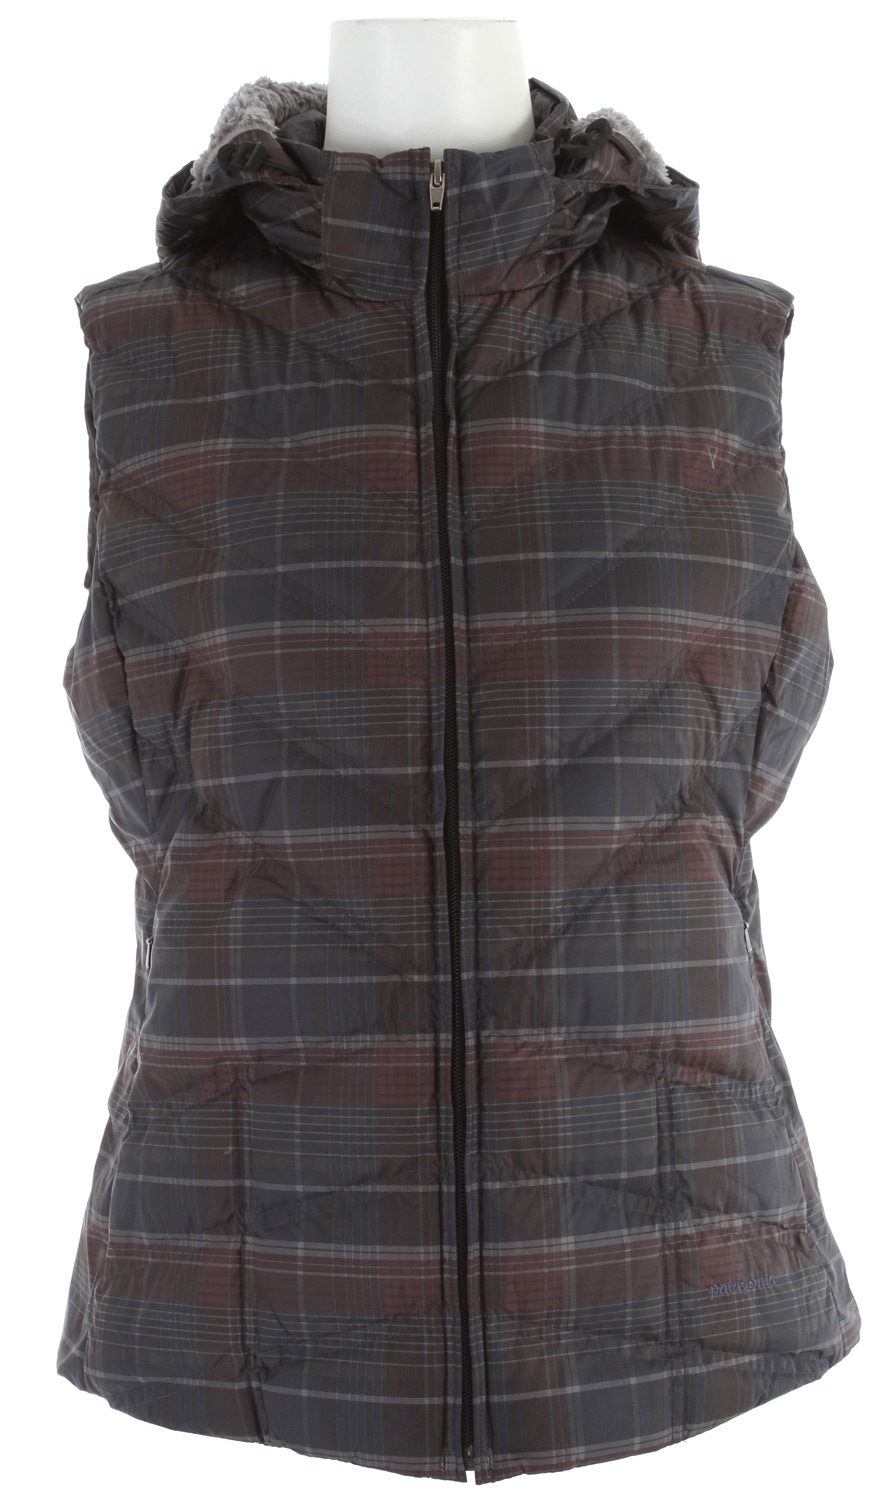 Our Down With It Vest is made with an all-recycled polyester shell and 600-fill-power premium European goose-down insulation, and comes with a removable hood.  After a frigid North Coast session, re-warm your core in the Down With It Vest. The all-recycled polyester shell is treated with a Deluge DWR (durable waterproof repellent  finish to shed moisture; 600-fill-power premium goose-down insulation provides serious warmth. The removable hood is lined with luscious deep-pile fleece and adjusts with two drawcords. Diagonal chevron quilting lends a contoured fit; non-quilted side panels provide a sleek silhouette. Pockets: zippered on-seam handwarmers and an internal zippered security.Key Features of the Patagonia Down With It Vest:  100% recycled polyester shell insulated with 600-fill-power premium European goose down  Adjustable, removable hood lined with high-pile fleece  Zippered on-seam handwarmer pockets; internal zippered security pocket  Diagonal chevron quilting for contoured fit; side panels are not quilted for a sleek silhouette  Hip length  2.3 oz 100% recycled polyester with a Deluge DWR (durable water repellent  finish. Insulation: 600-fill-power premium European goose down. Hood lining: 100% polyester fleece  425g (15 oz   Made in China.  Recycled Polyester: We recycle used soda bottles, unusable second quality fabrics and worn out garments into polyester fibers to produce many of our clothes.  Deluge DWR: Patagonia's proprietary durable water repellent fabric finish, Deluge DWR, lasts substantially longer than standard DWRs. Garments with the Deluge DWR finish have like-new repellency after years of extensive use. - $123.95